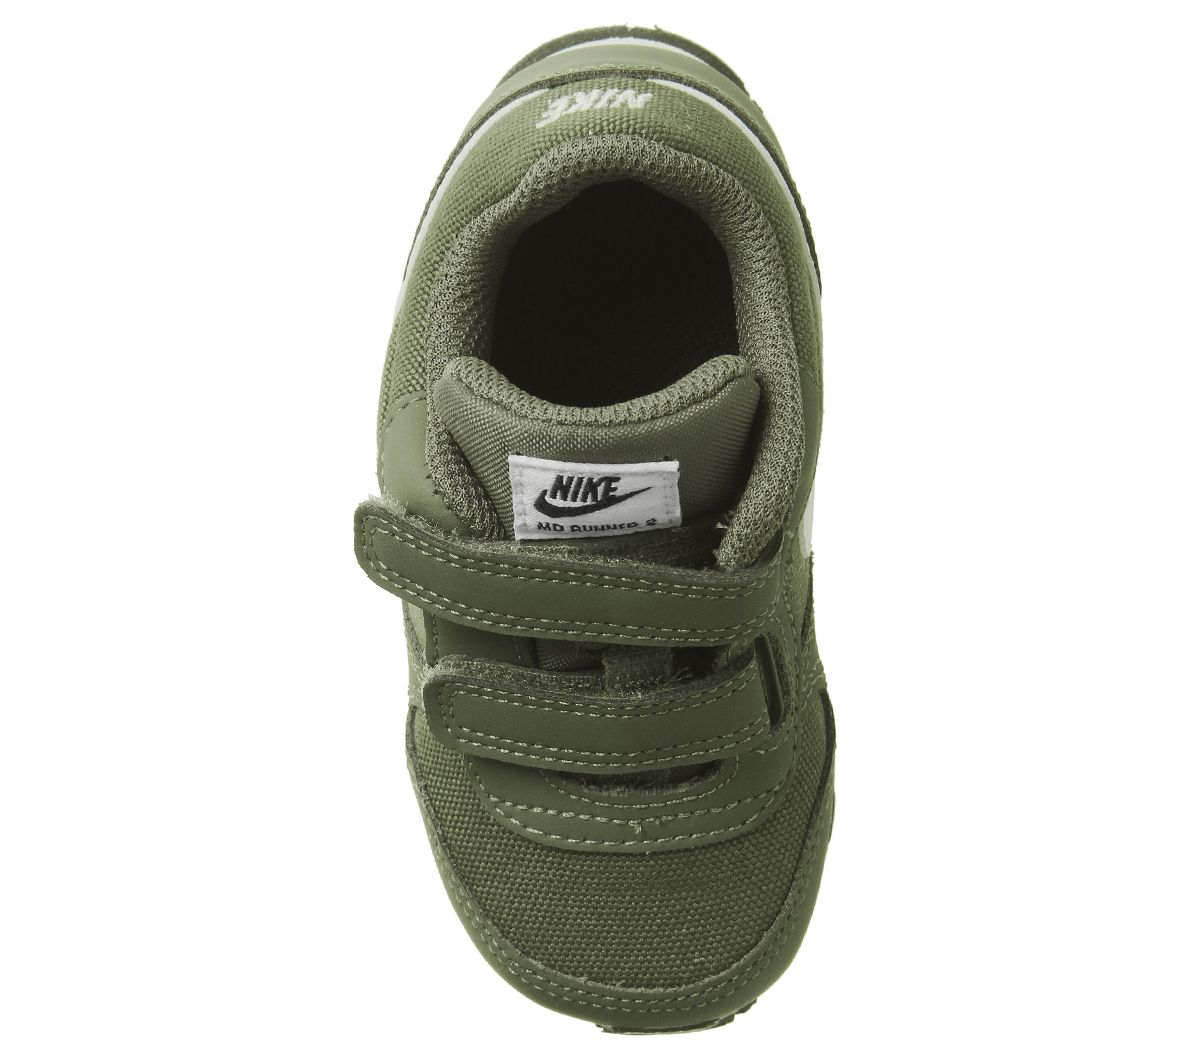 10ed6b4a8e Nike Md Runner Infant Medium Olive White Black - Unisex